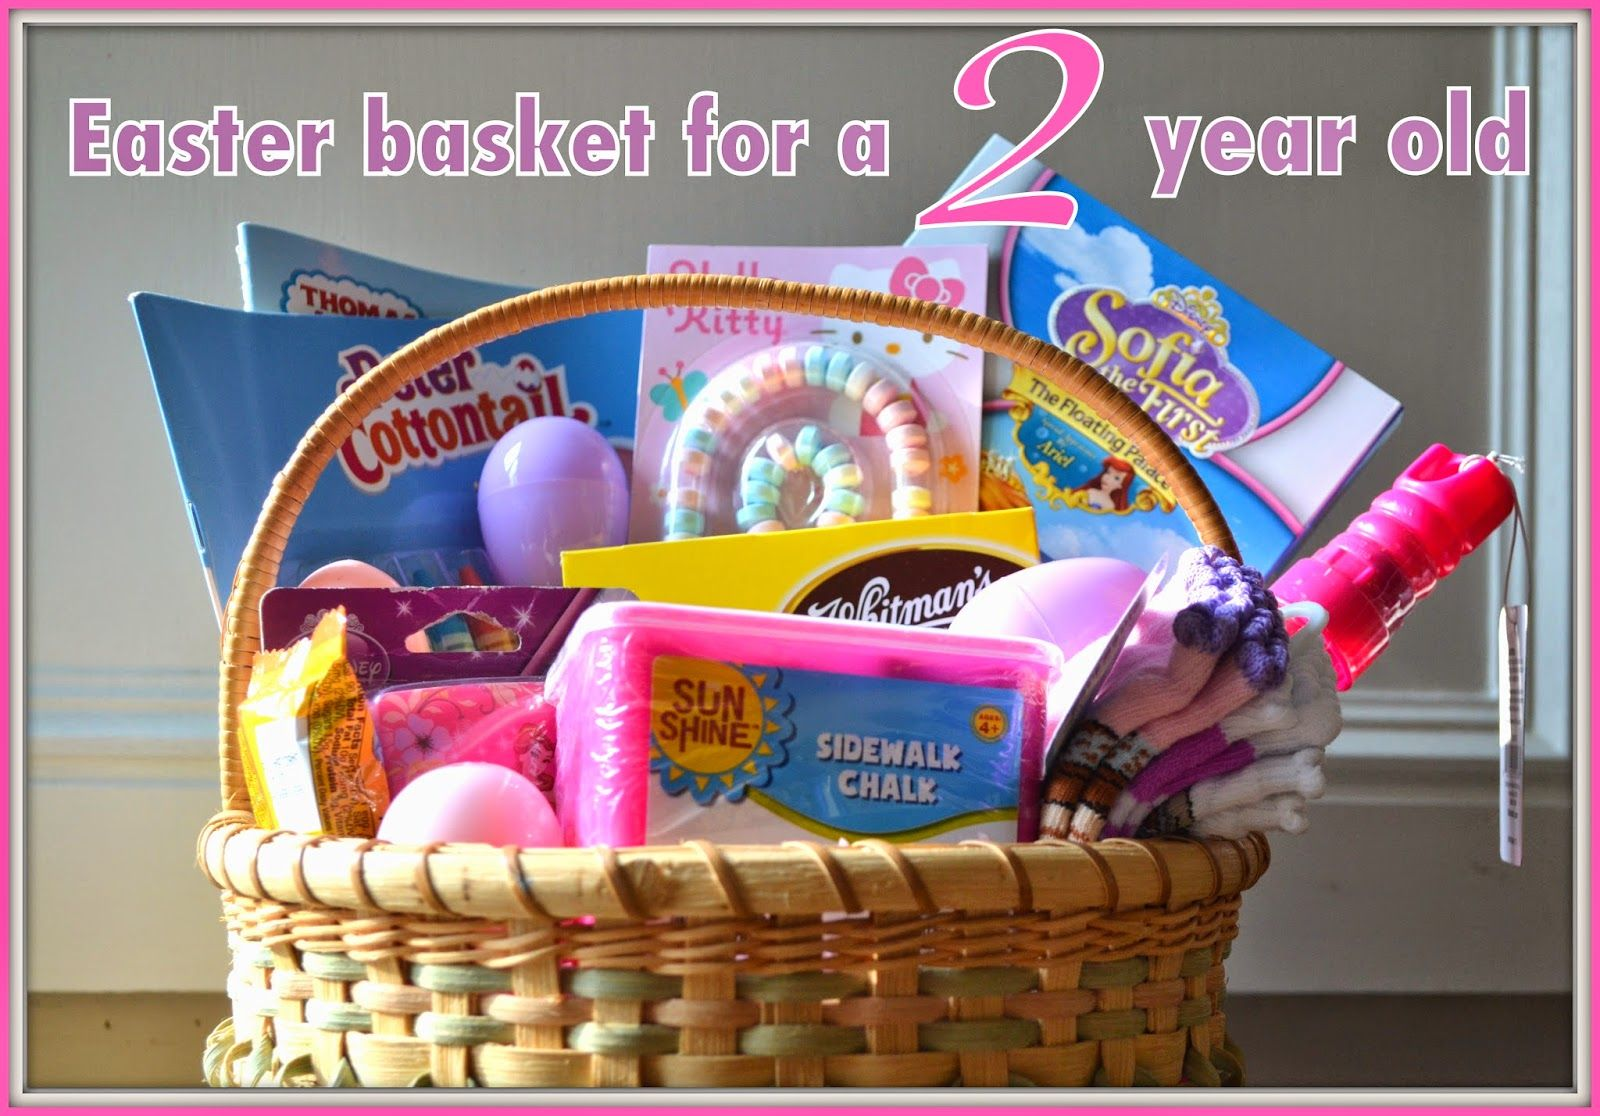 Easter basket for 2 year old toddler easter pinterest easter easter basket for 2 year old toddler easter pinterest easter baskets easter and holidays negle Images